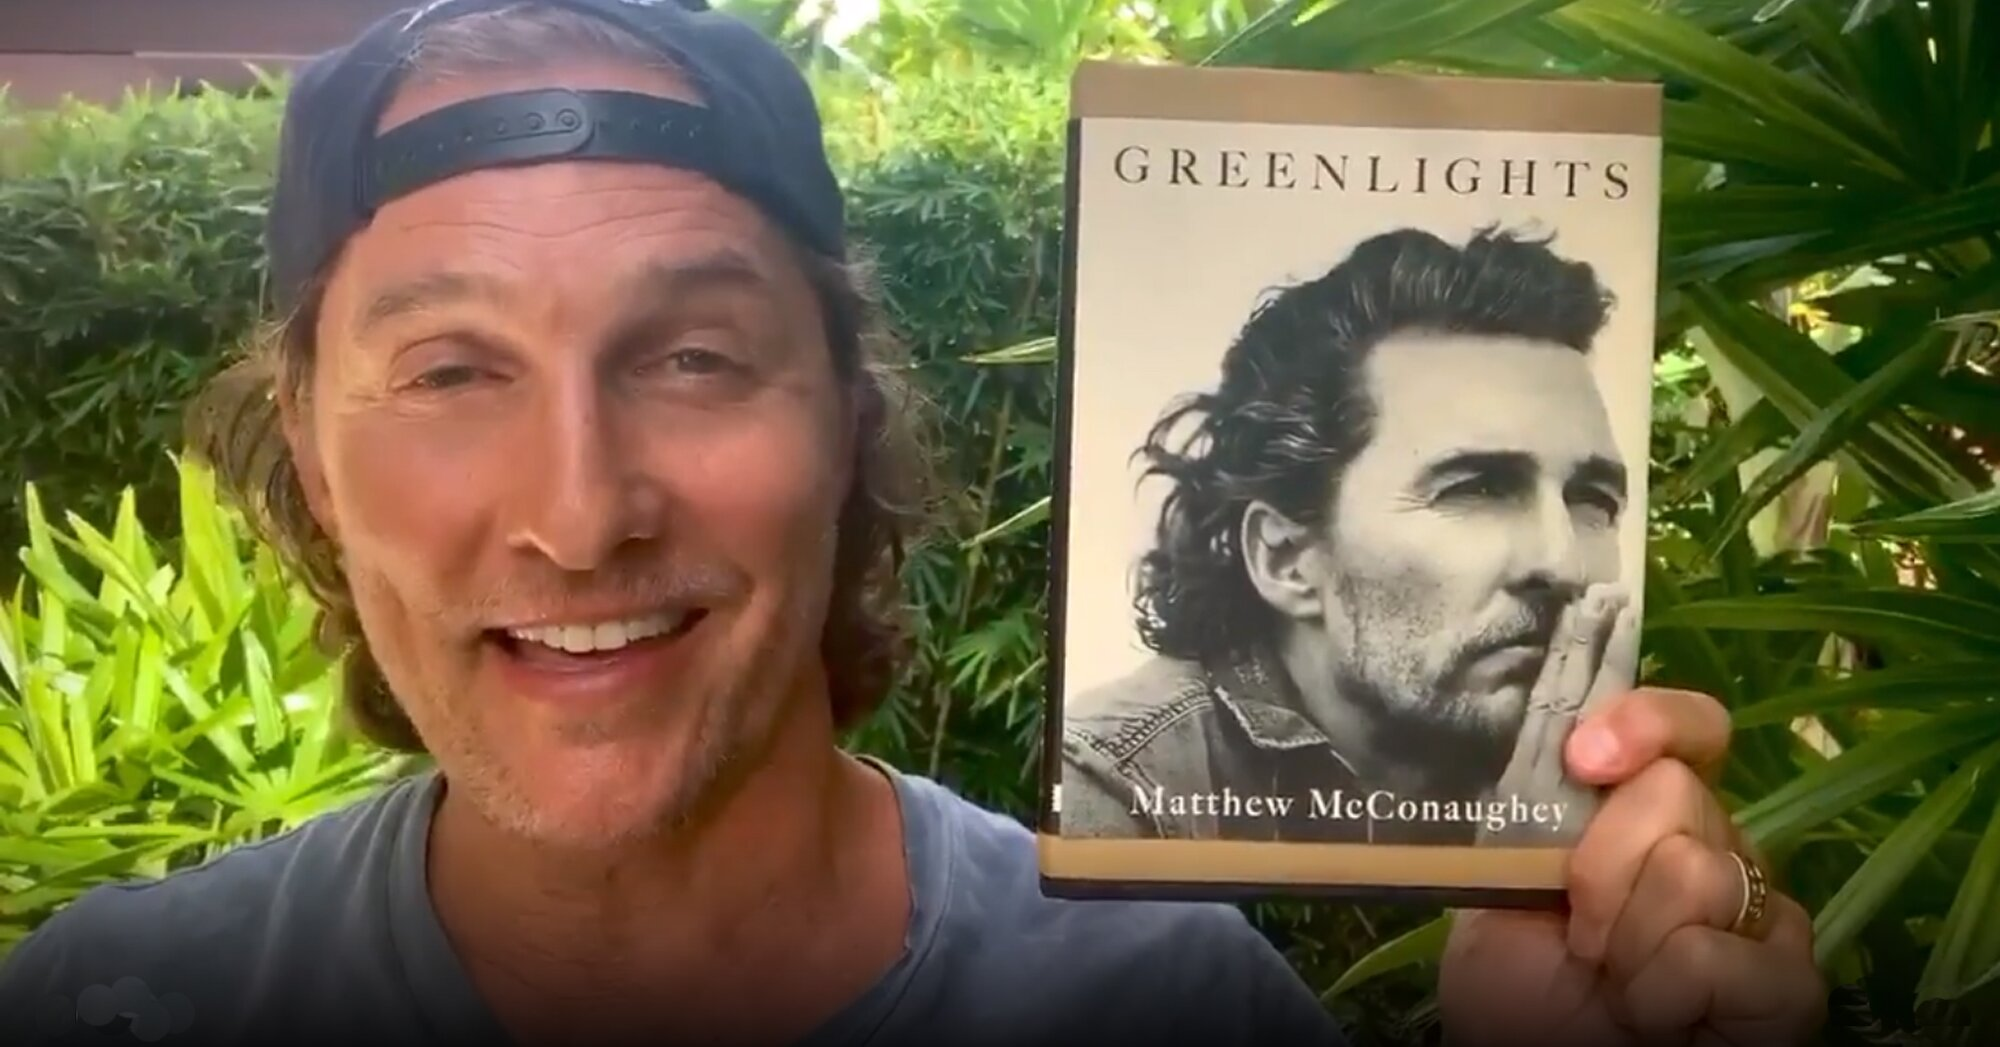 Matthew McConaughey on His Memoir Writing Process: 12 Days Alone in the Desert (Without Electricity!)